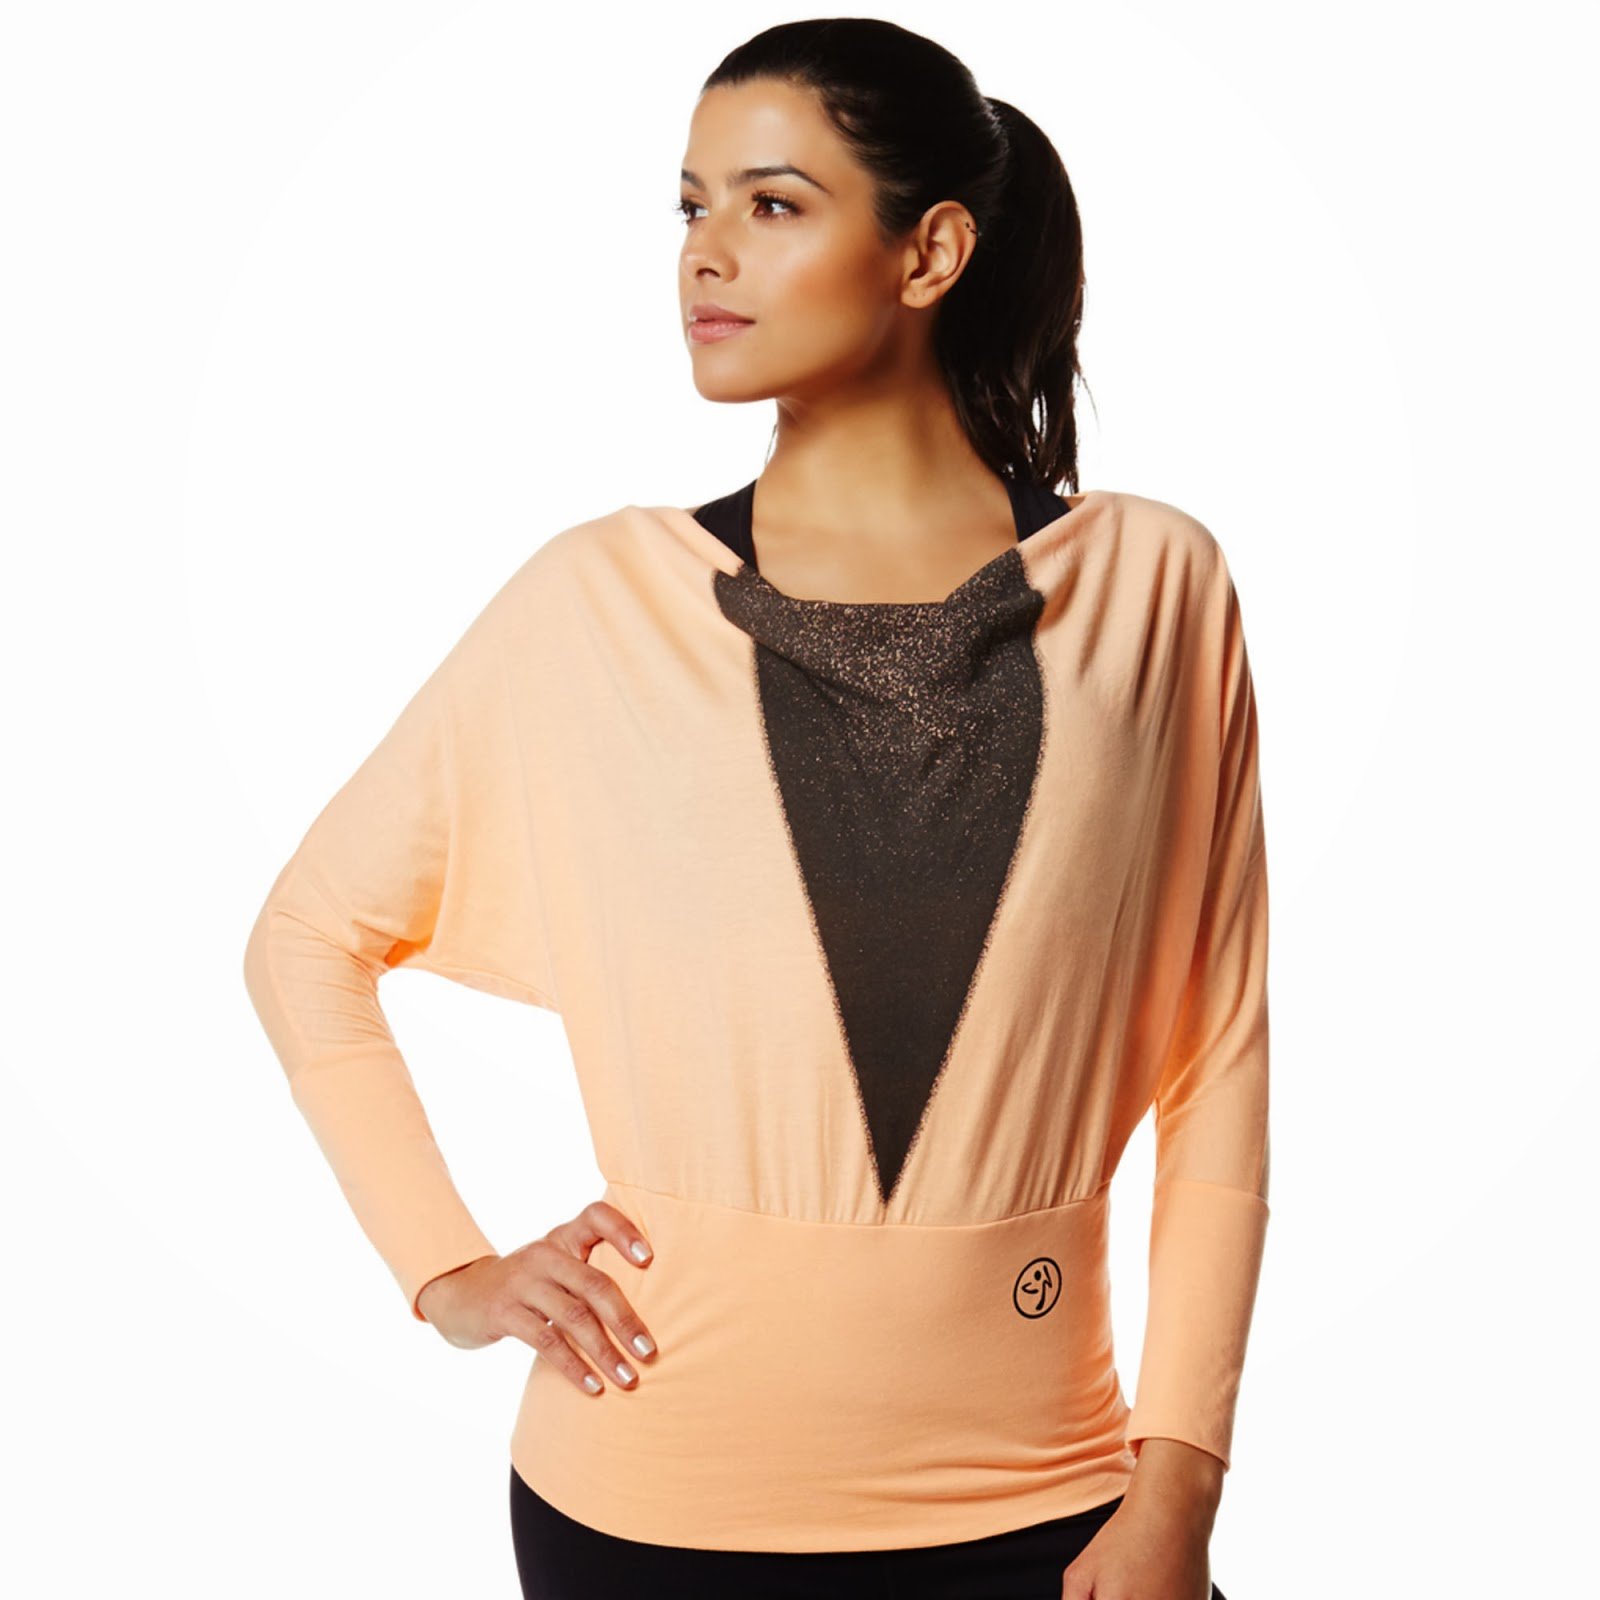 http://www.zumba.com/en-US/store/US/product/pretty-in-print-3-4-sleeve-top?color=Wear+It+Out+White